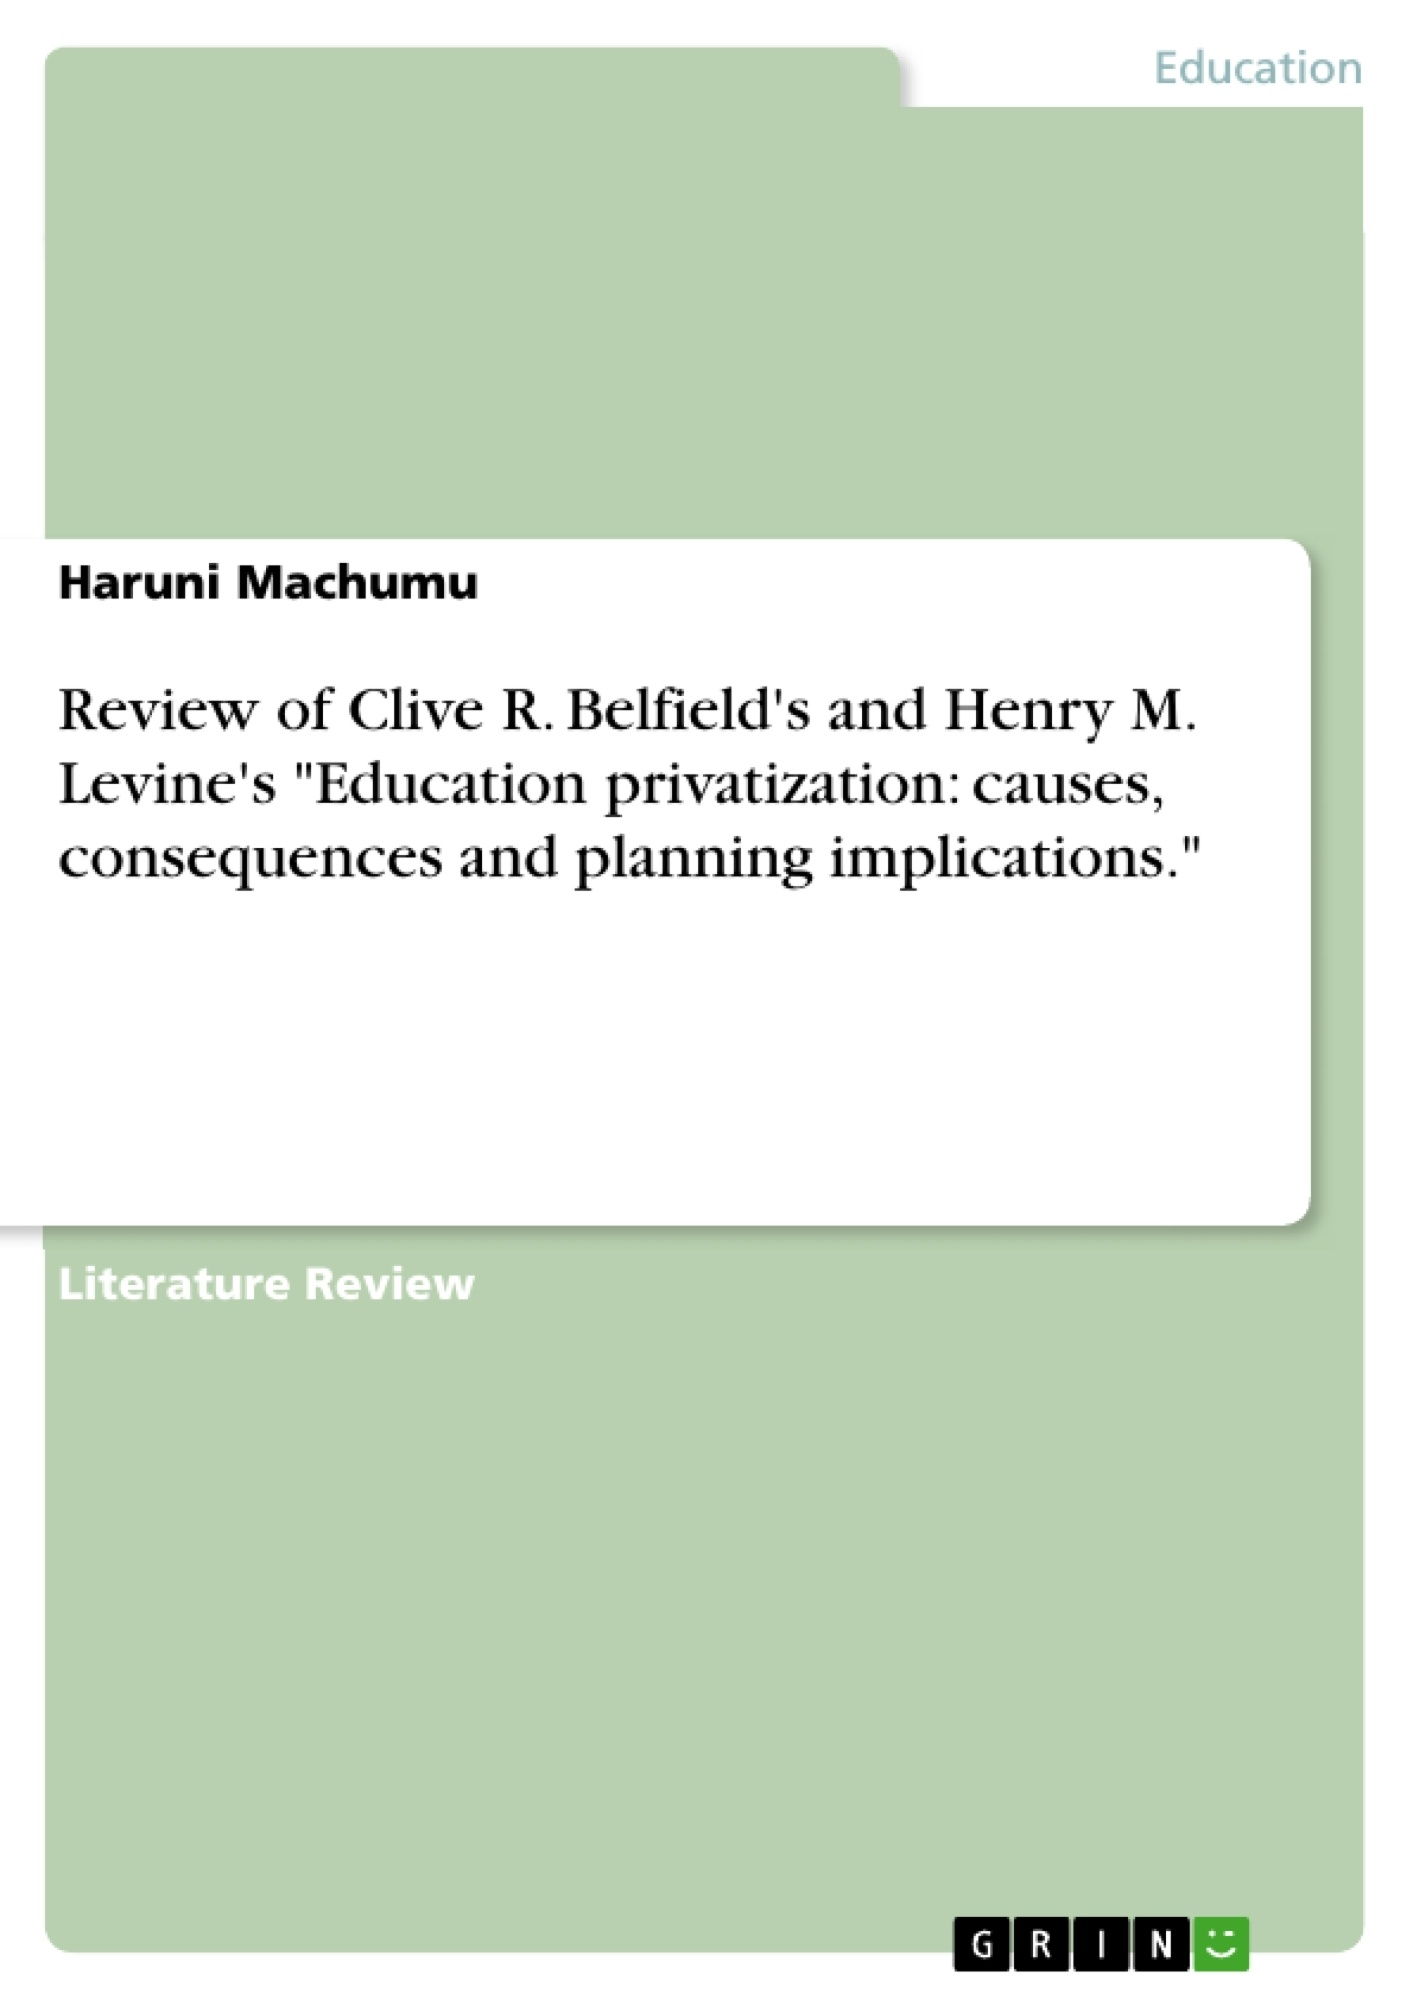 """Title: Review of Clive R. Belfield's and Henry M. Levine's """"Education privatization: causes, consequences and planning implications."""""""